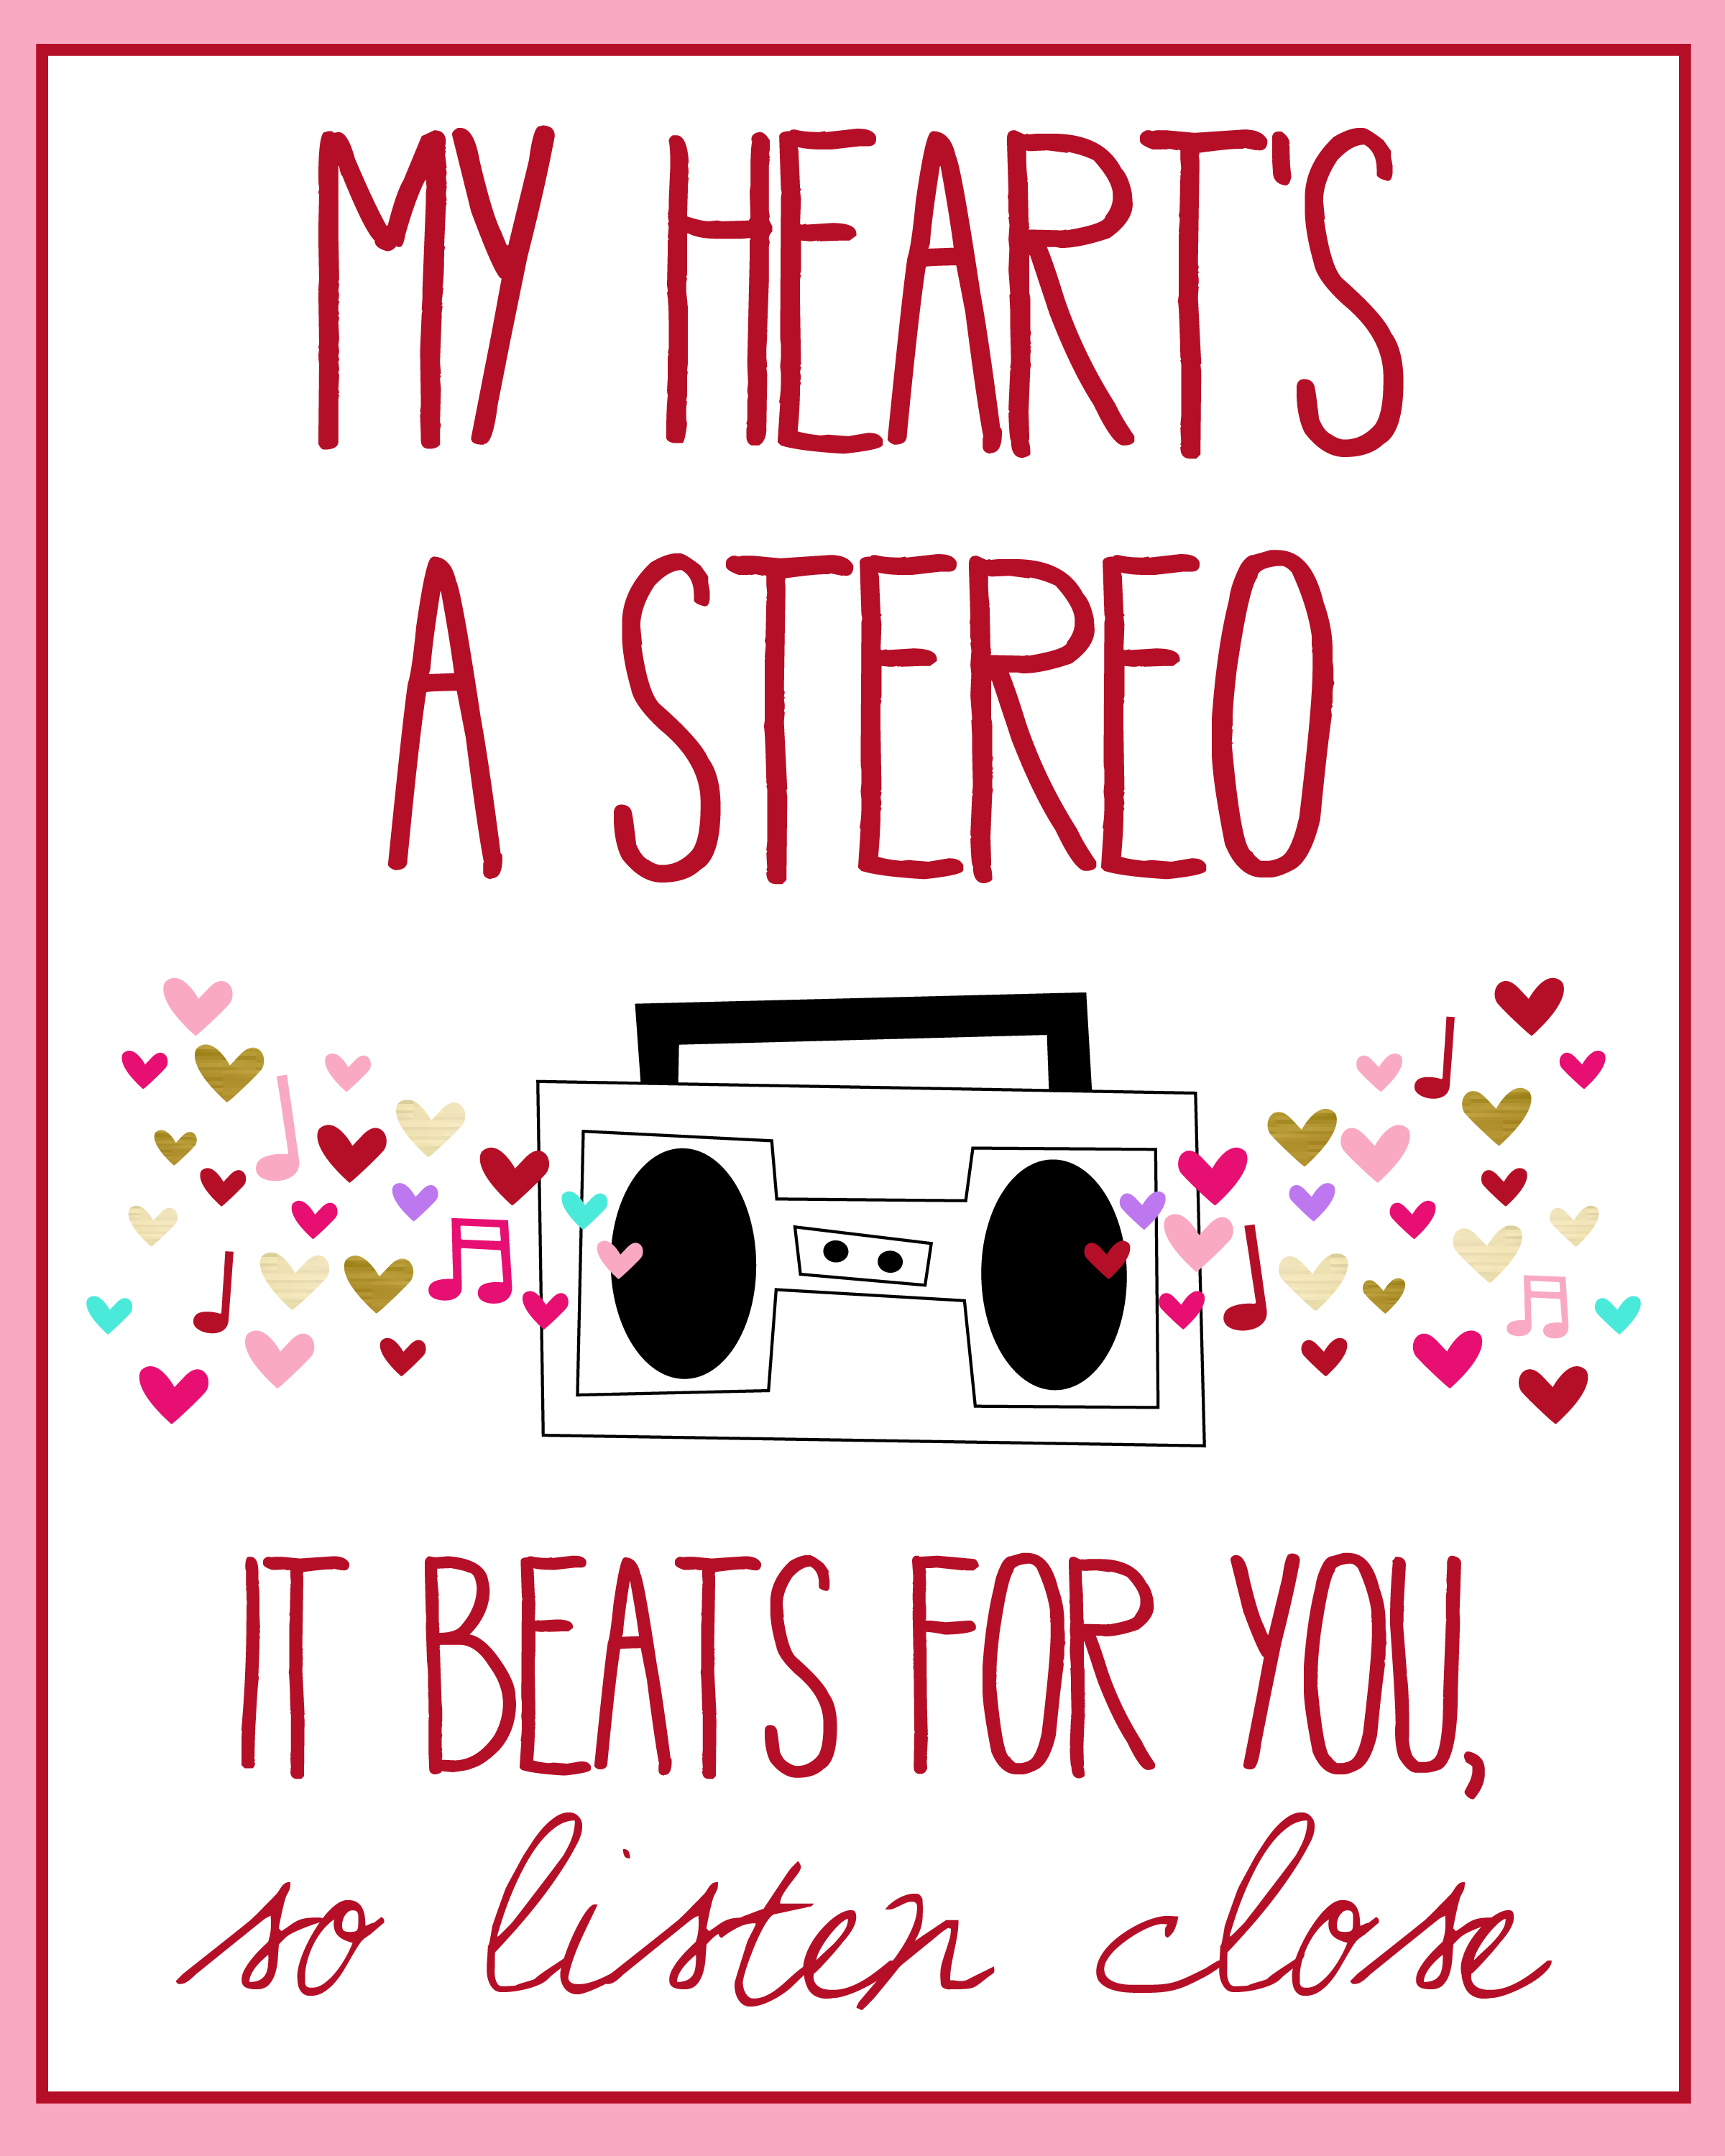 My Heart's a Stereo free Print | Music | Music lyrics, Songs, Song